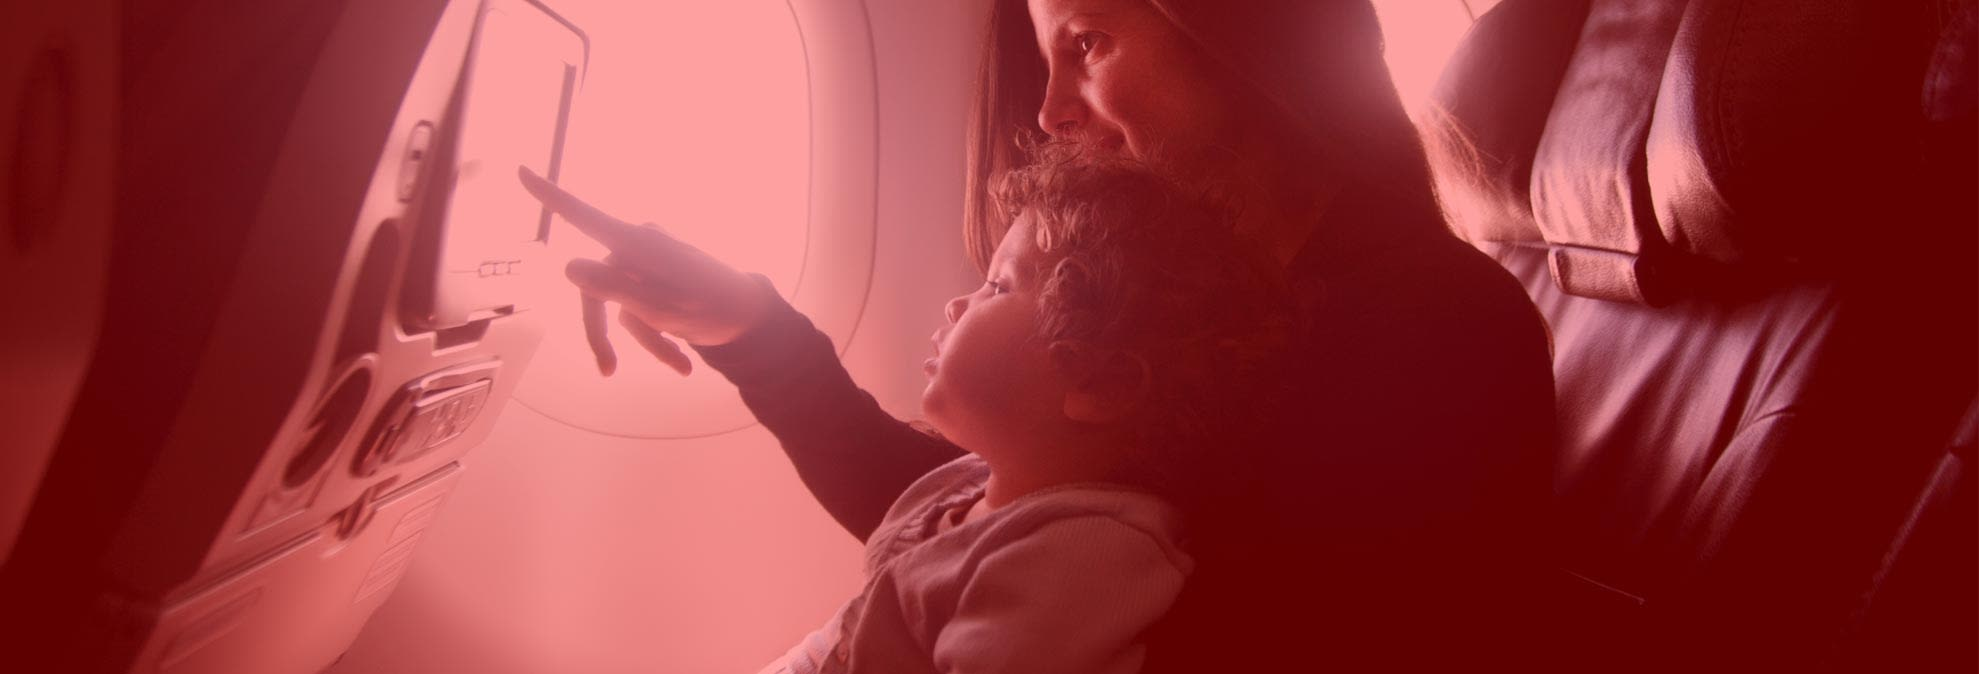 Why You Should Never Fly With a Baby on Your Lap